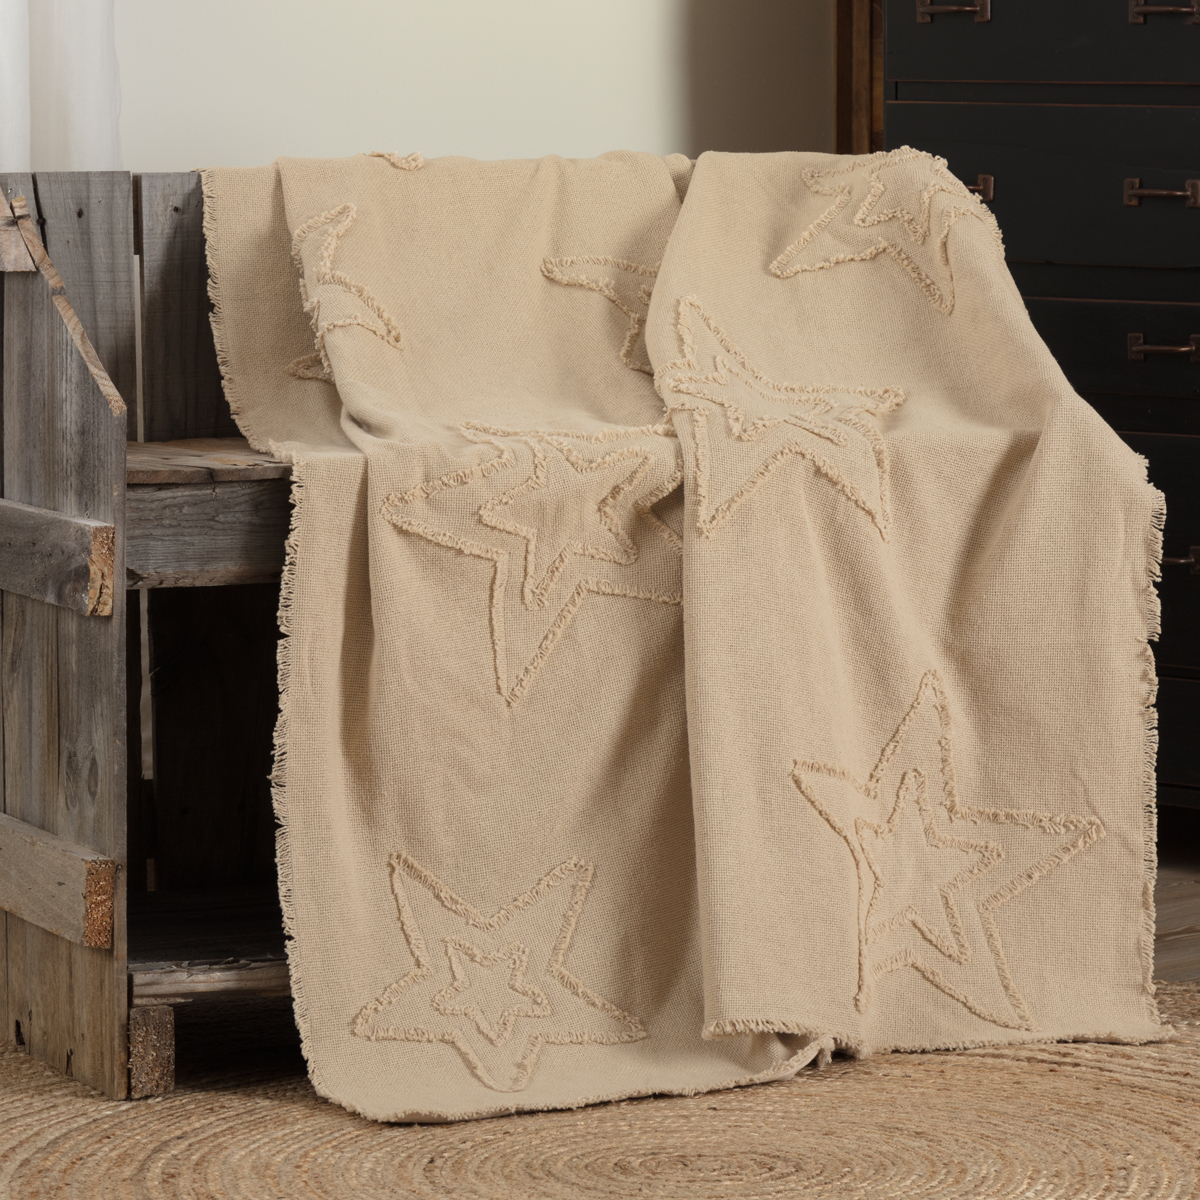 Burlap Vintage Star Woven Throw 60x50